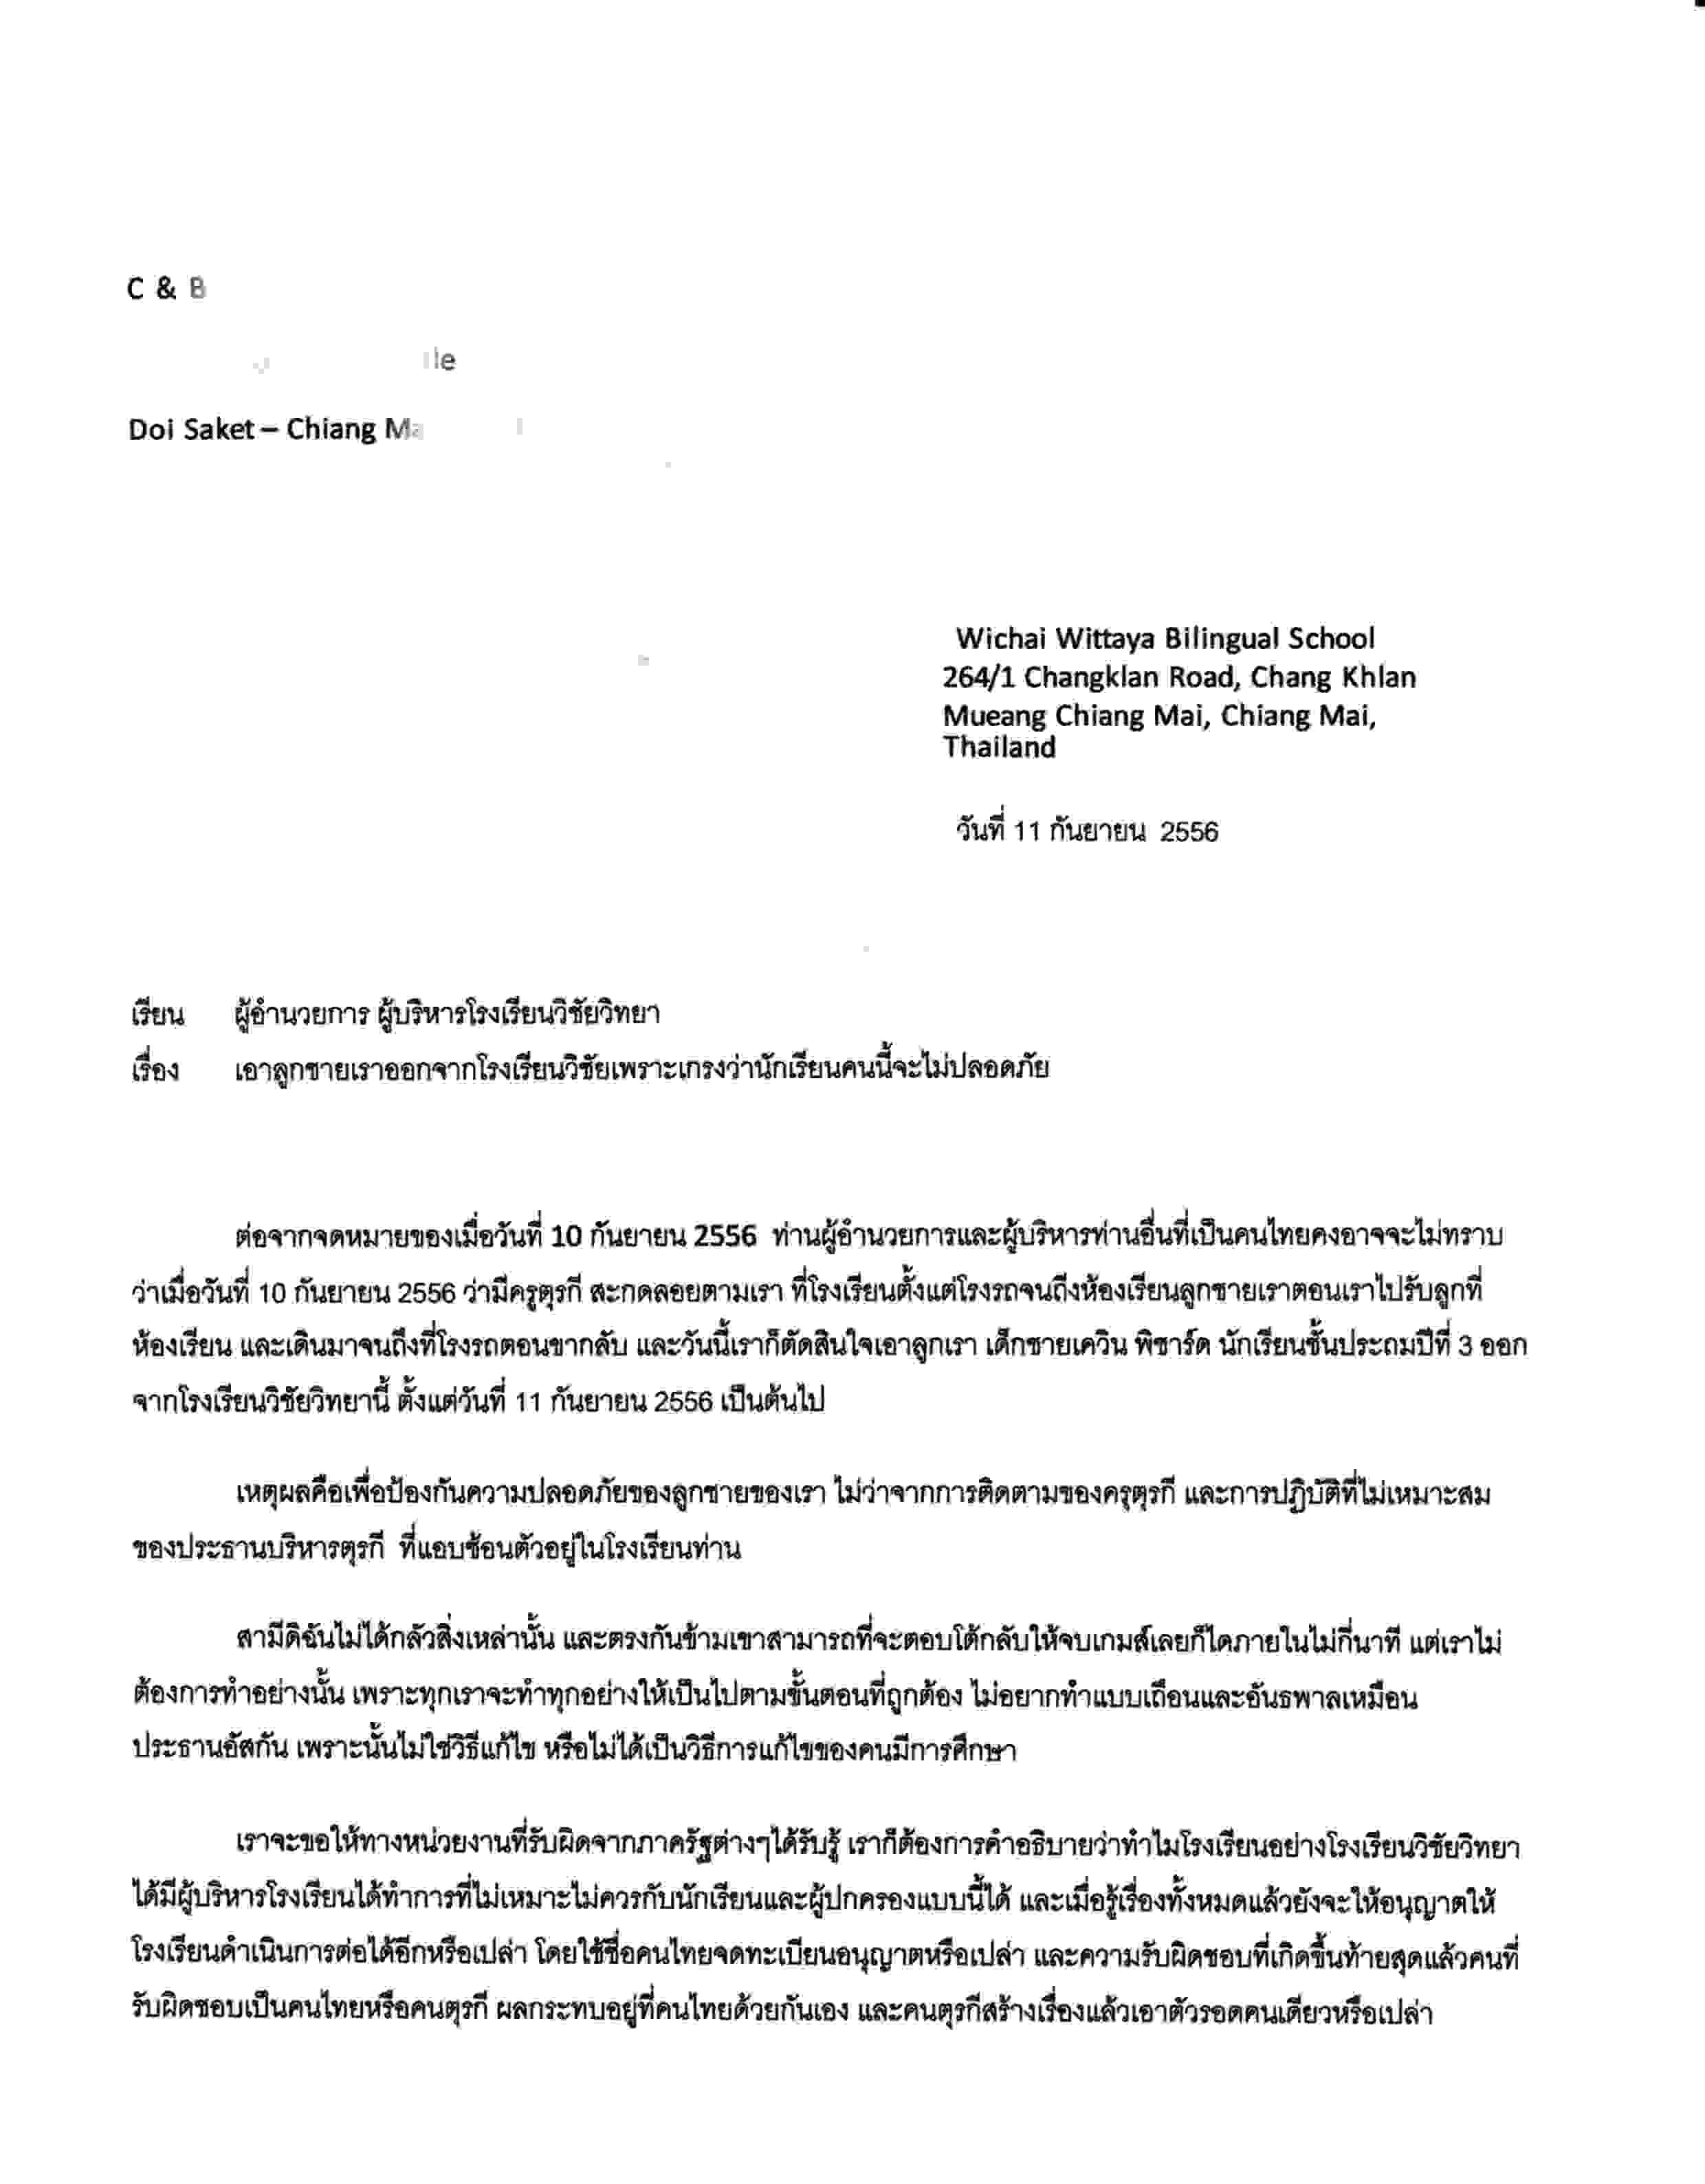 Complain And FULL STORY Against WICHAI WITTAYA SCHOOLWarning – Inform Letter